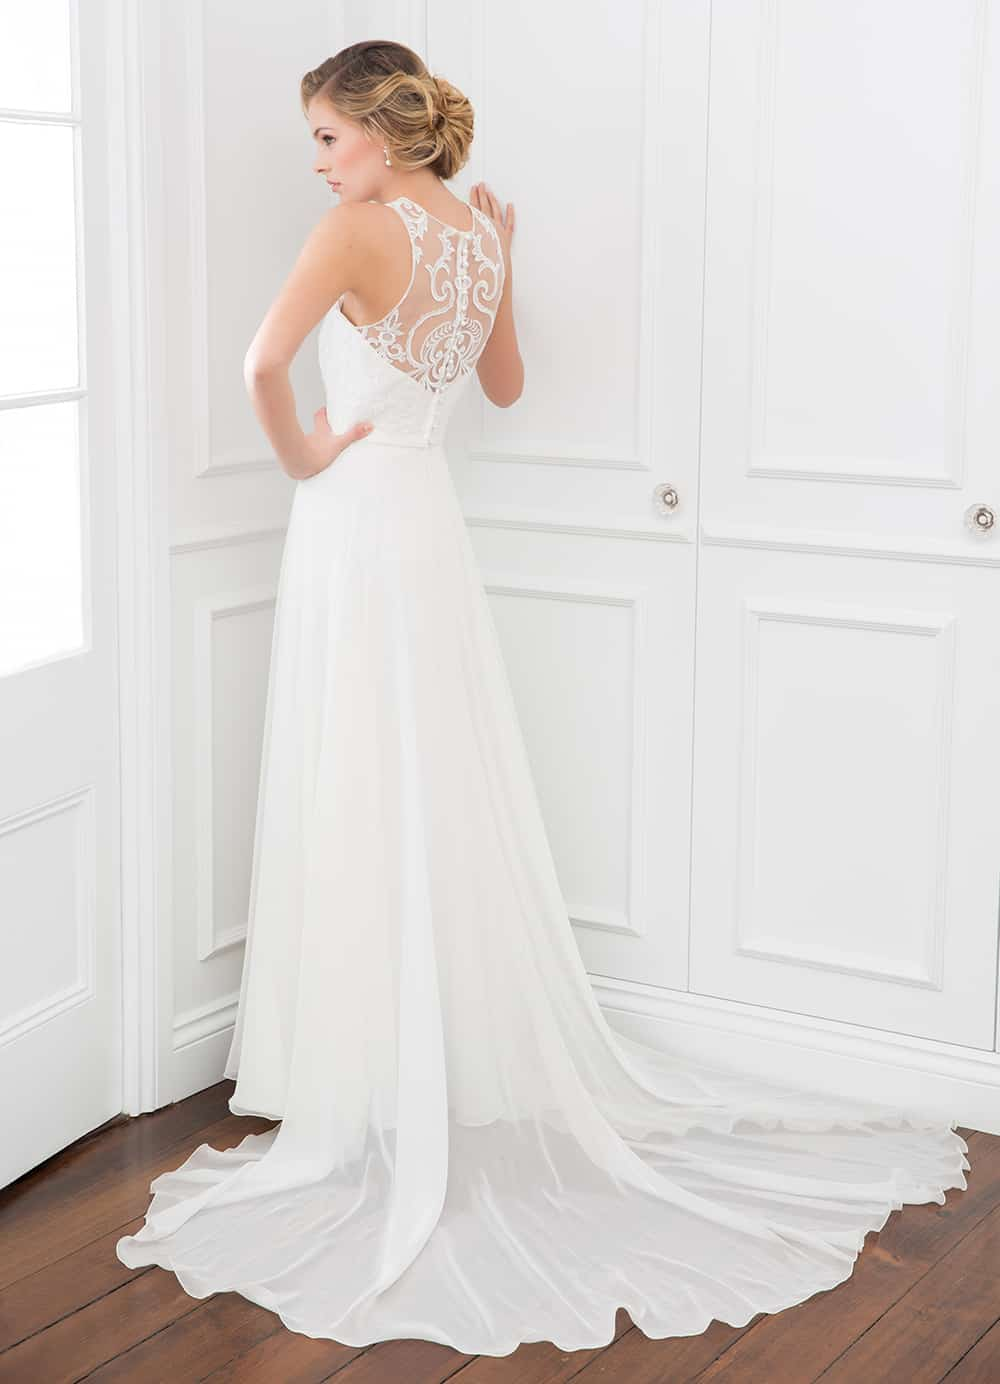 The Mariana gown with sheer lace back and train from Wendy Makin Couture.